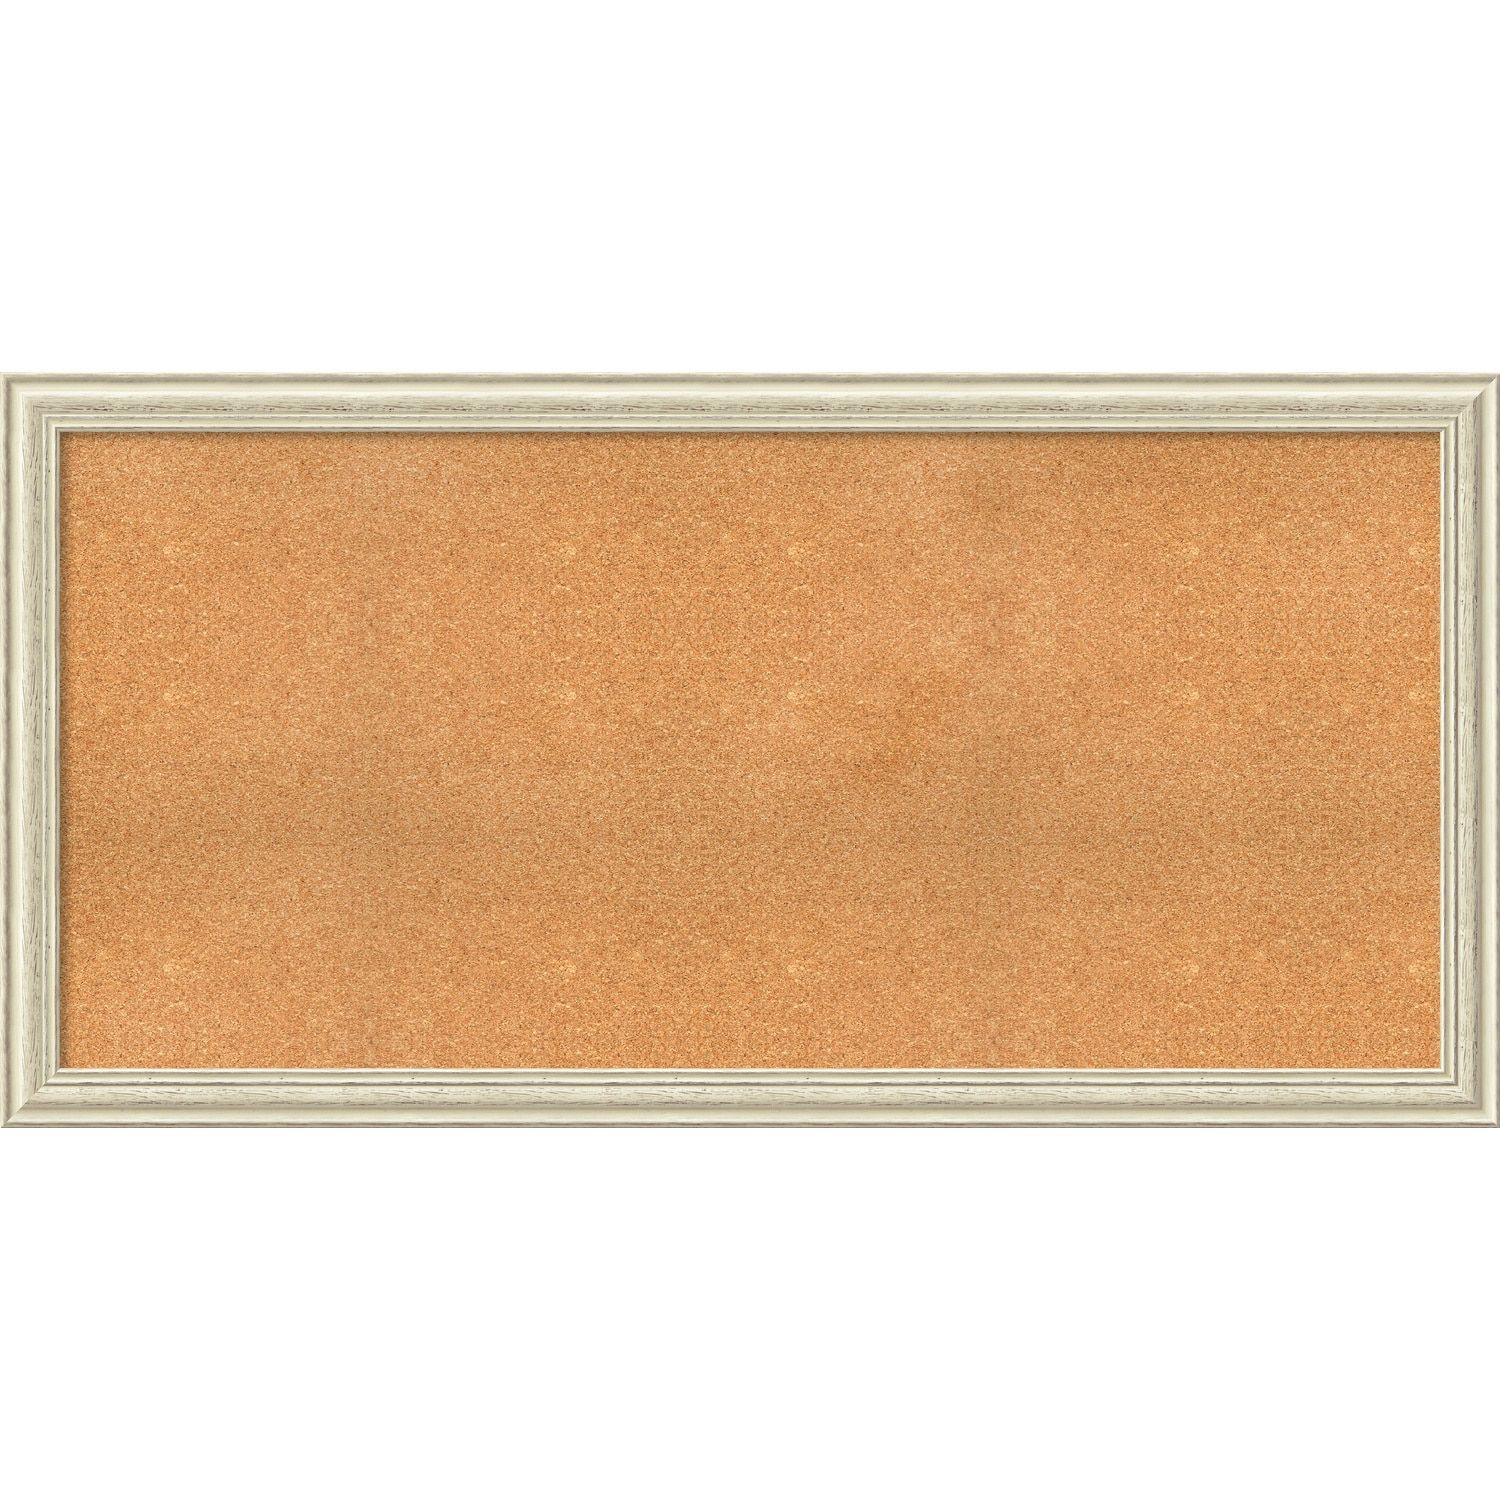 framed cork board choose your custom size country white wash wood 33 x - White Framed Cork Board